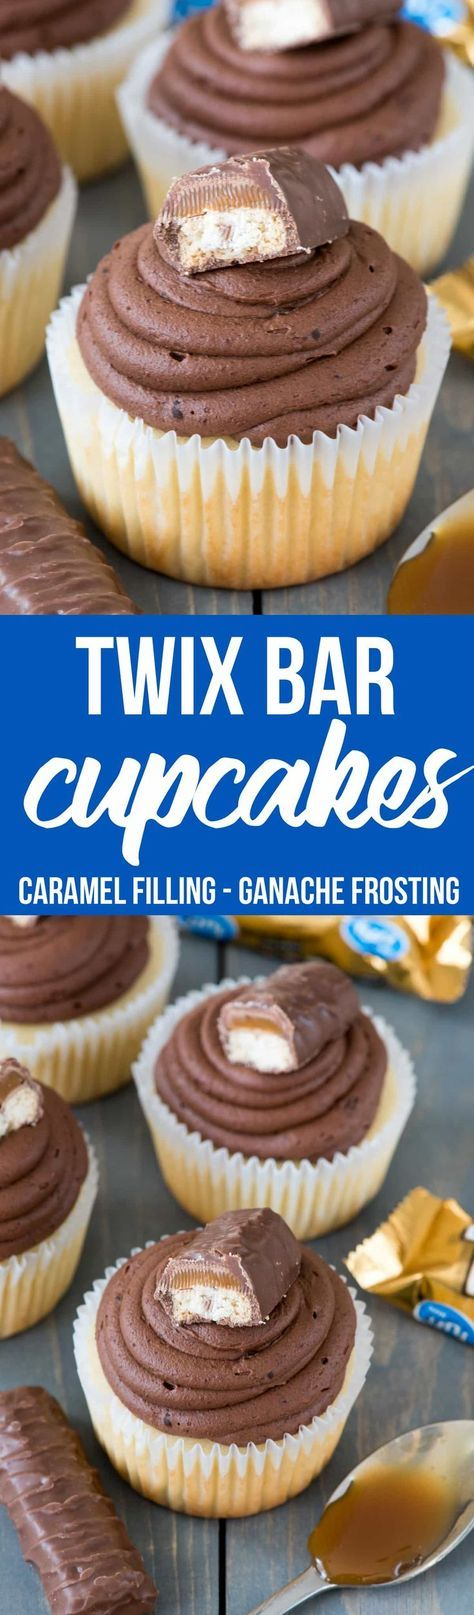 Easiest ever TWIX Cupcakes! This easy cupcake recipe fills vanilla cupcakes with caramel and tops them with a chocolate ganache frosting like a Twix Candy Bar! via @crazyforcrust